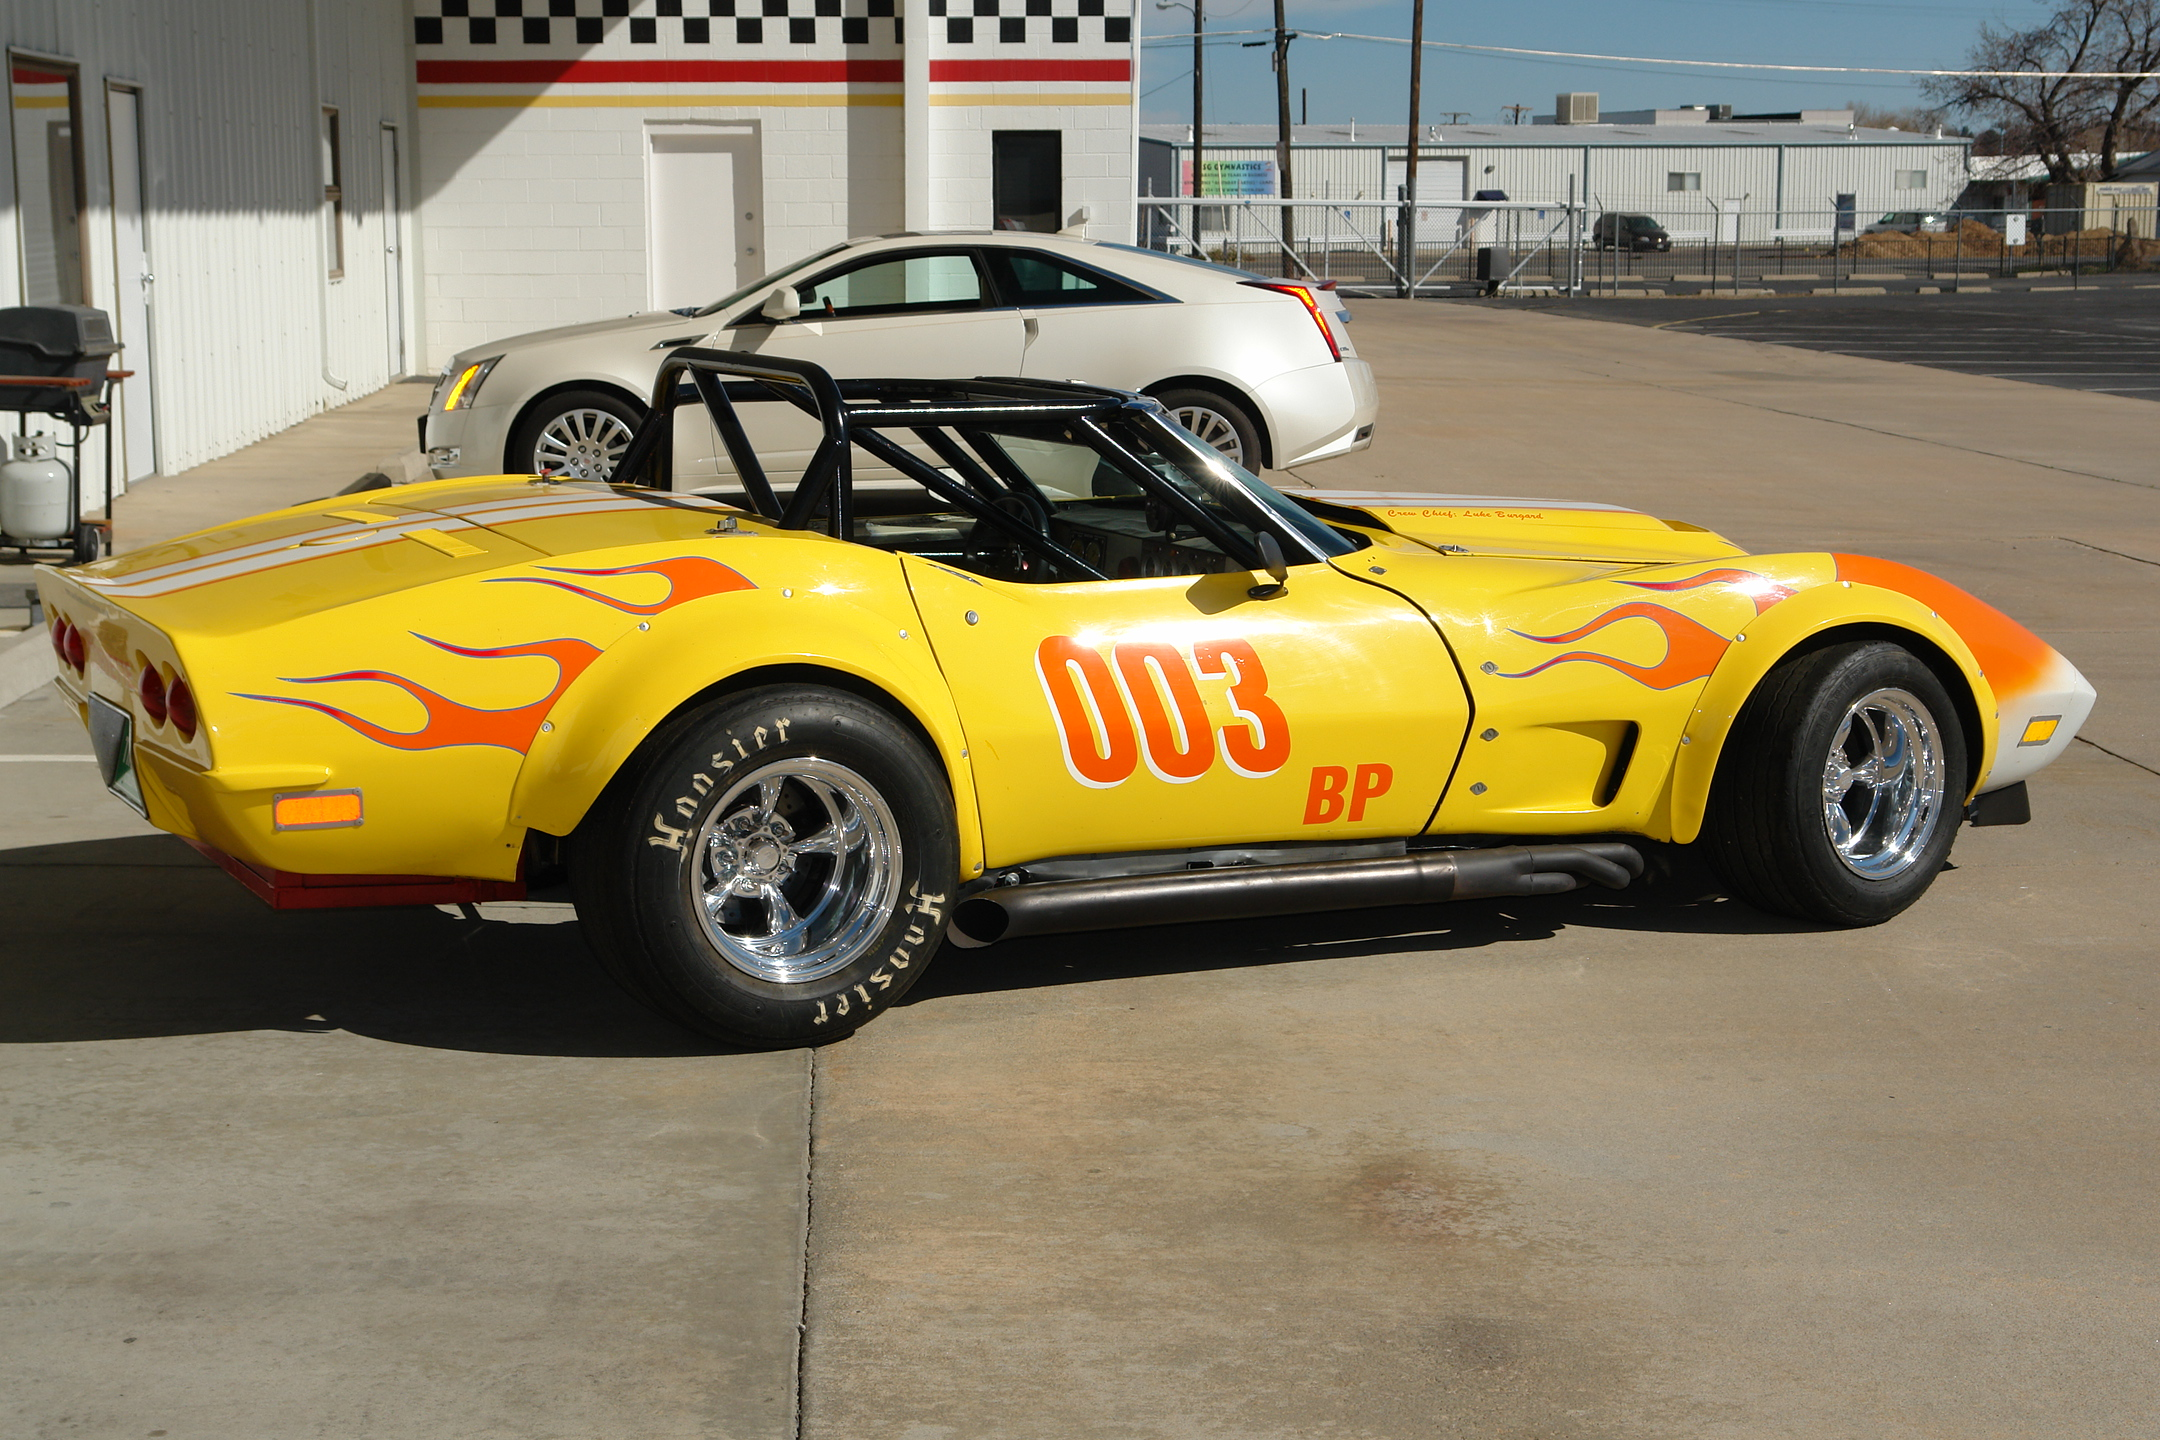 1969 Corvette Convertible Road Race Car Mathews Collection